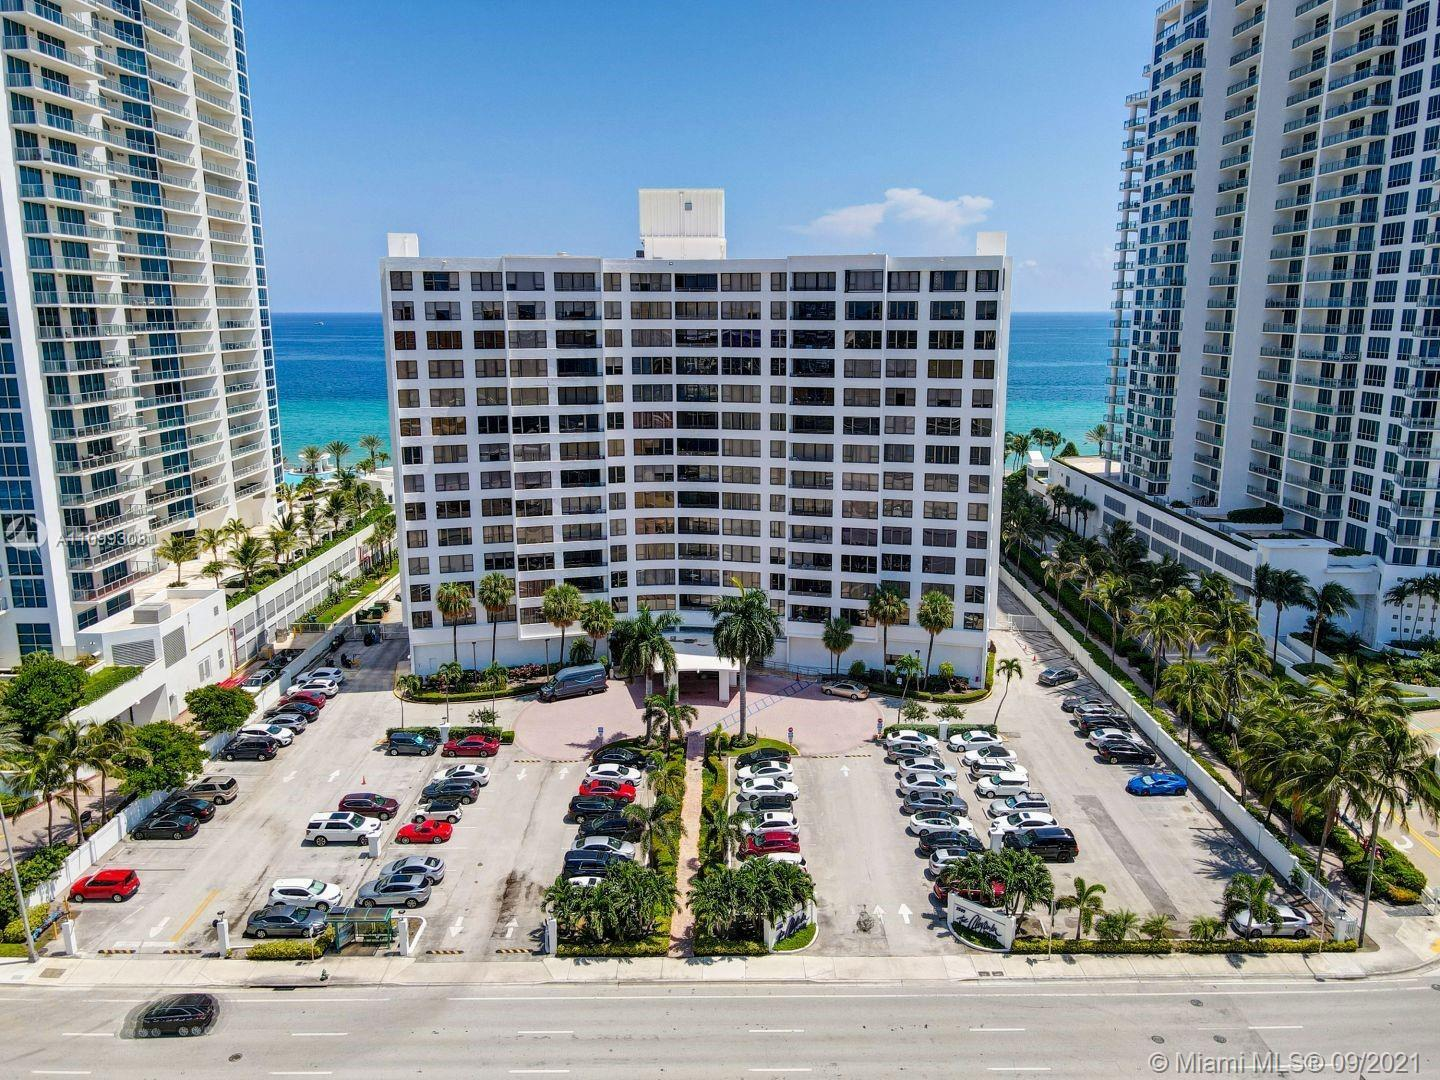 Beautiful  condo 1 Bed. 1 1/2 bath. Amazing intercostal view, flexible to use as an investment prope